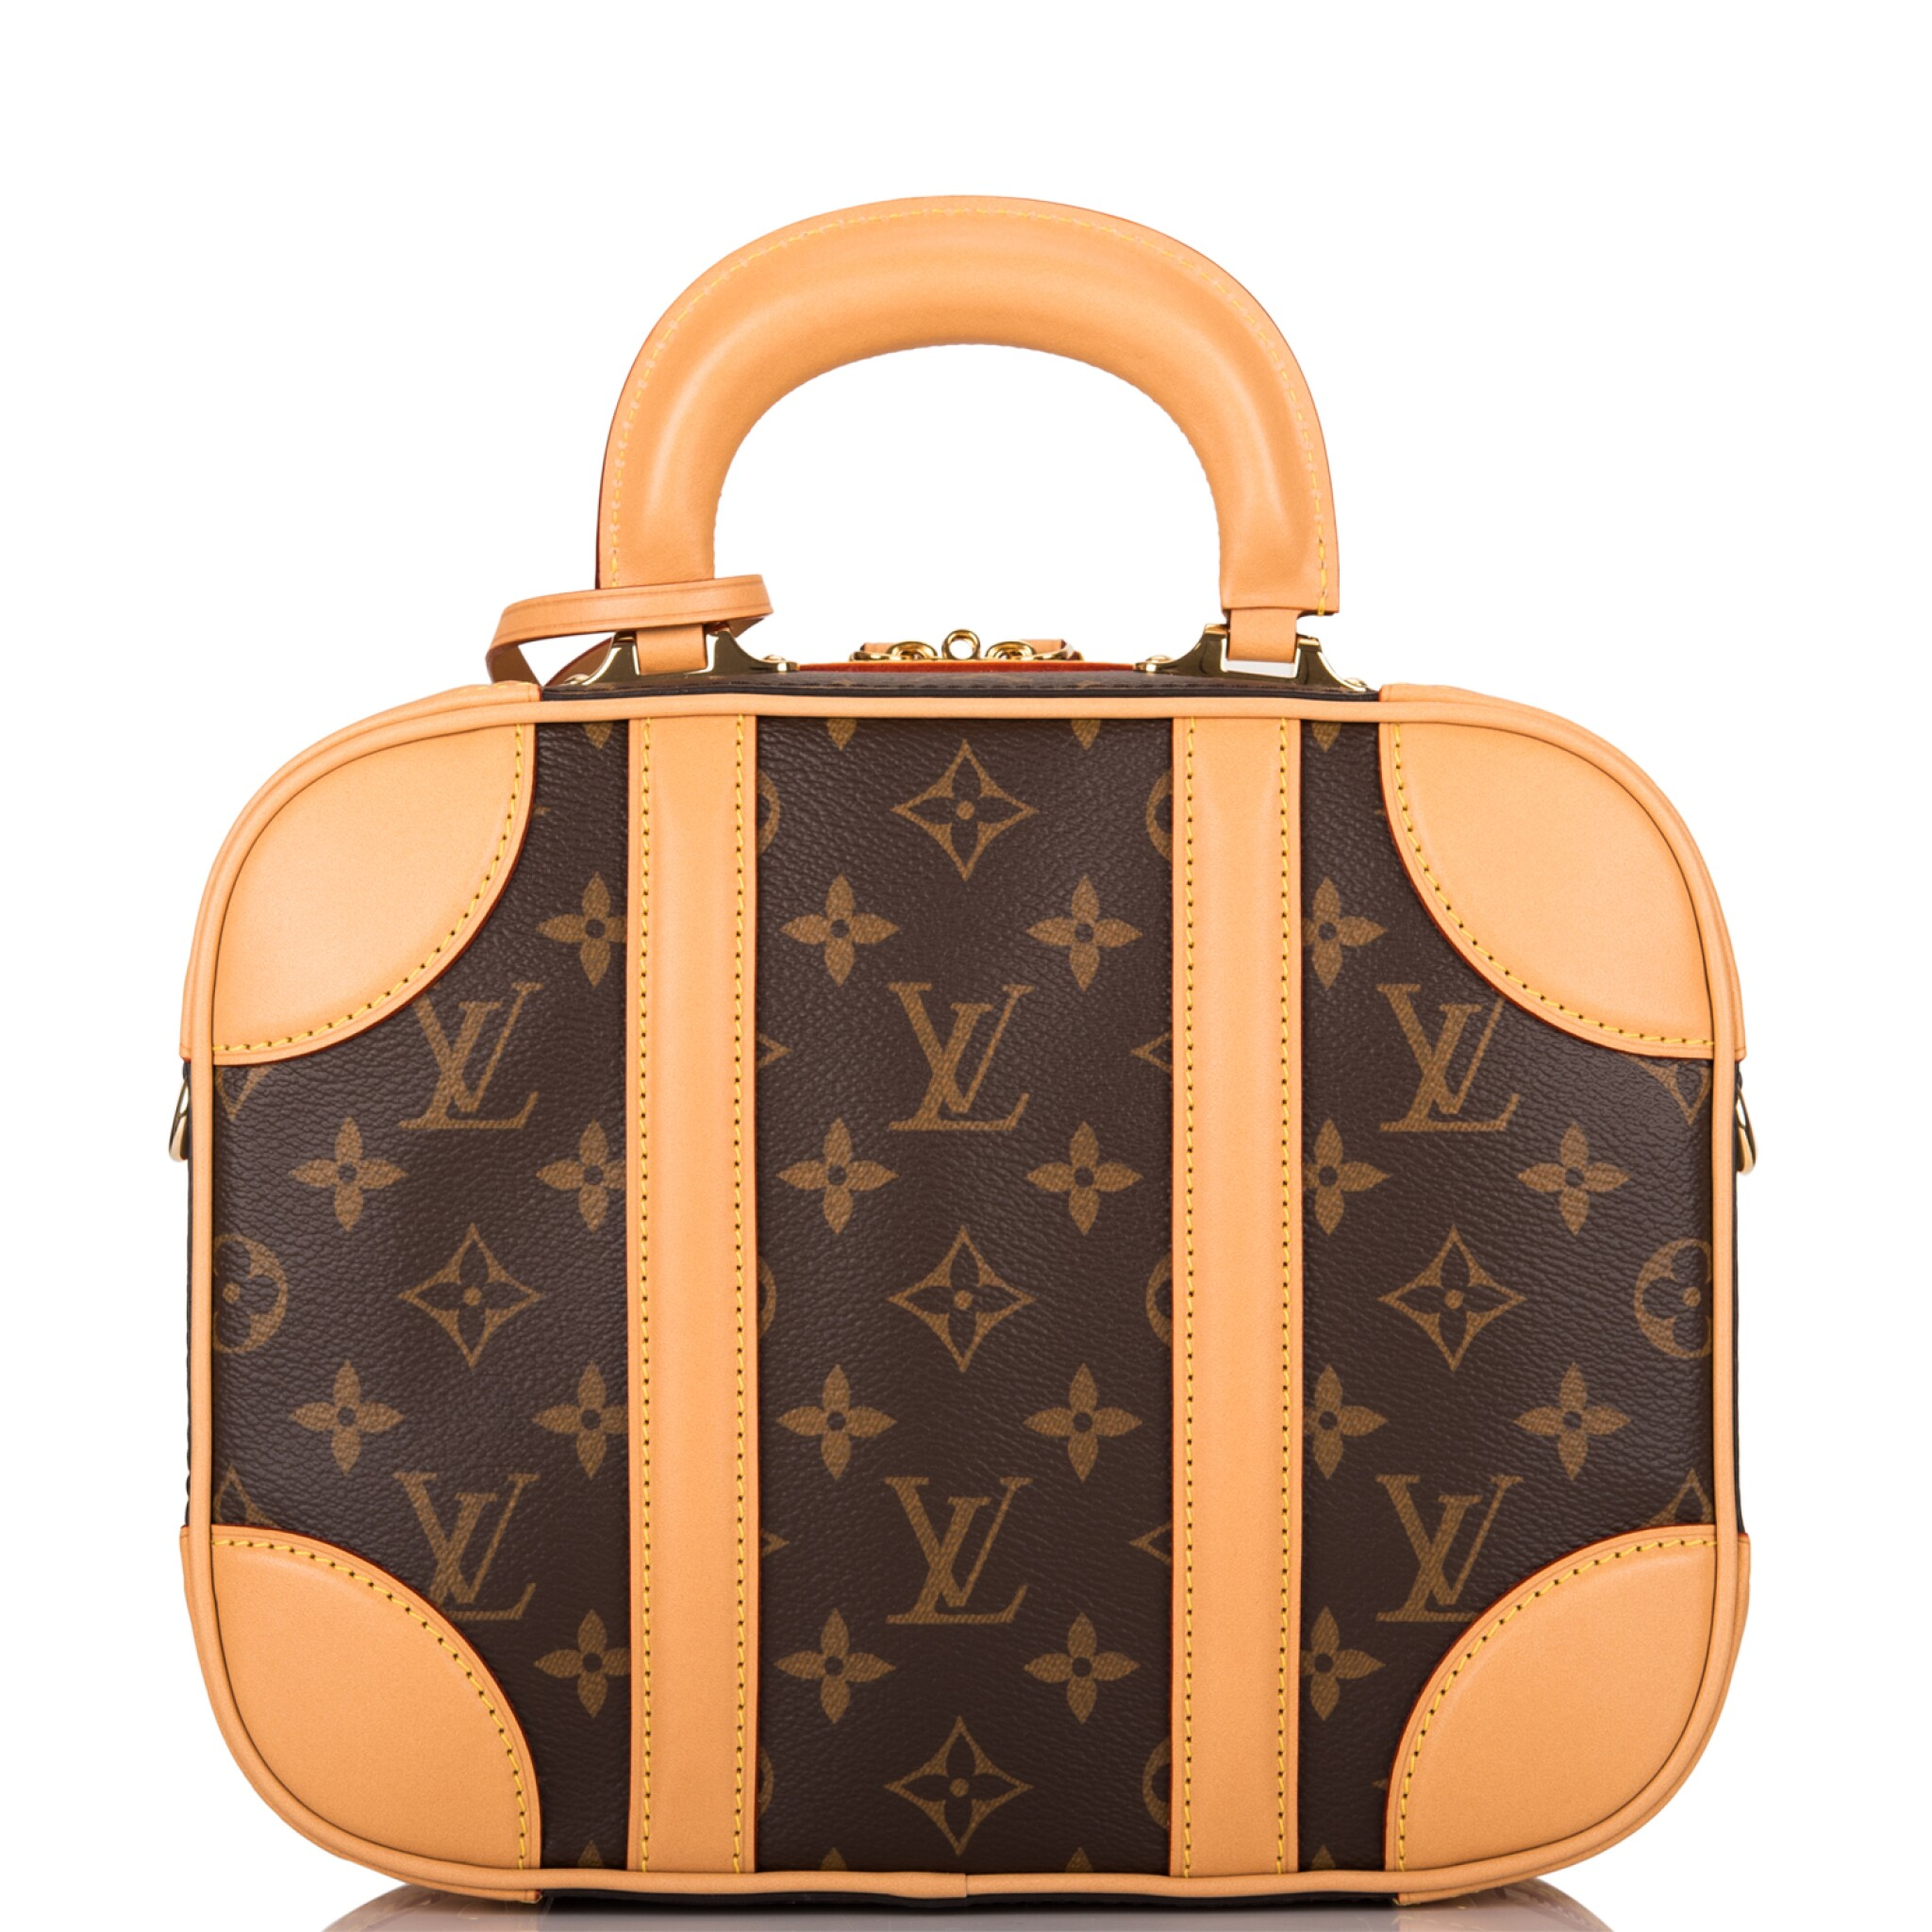 View full screen - View 1 of Lot 85. LOUIS VUITTON   MONOGRAM VALISETTE MINI LUGGAGE PM IN COATED CANVAS AND VACHETTA LEATHER WITH GOLDEN BRASS HARDWARE.